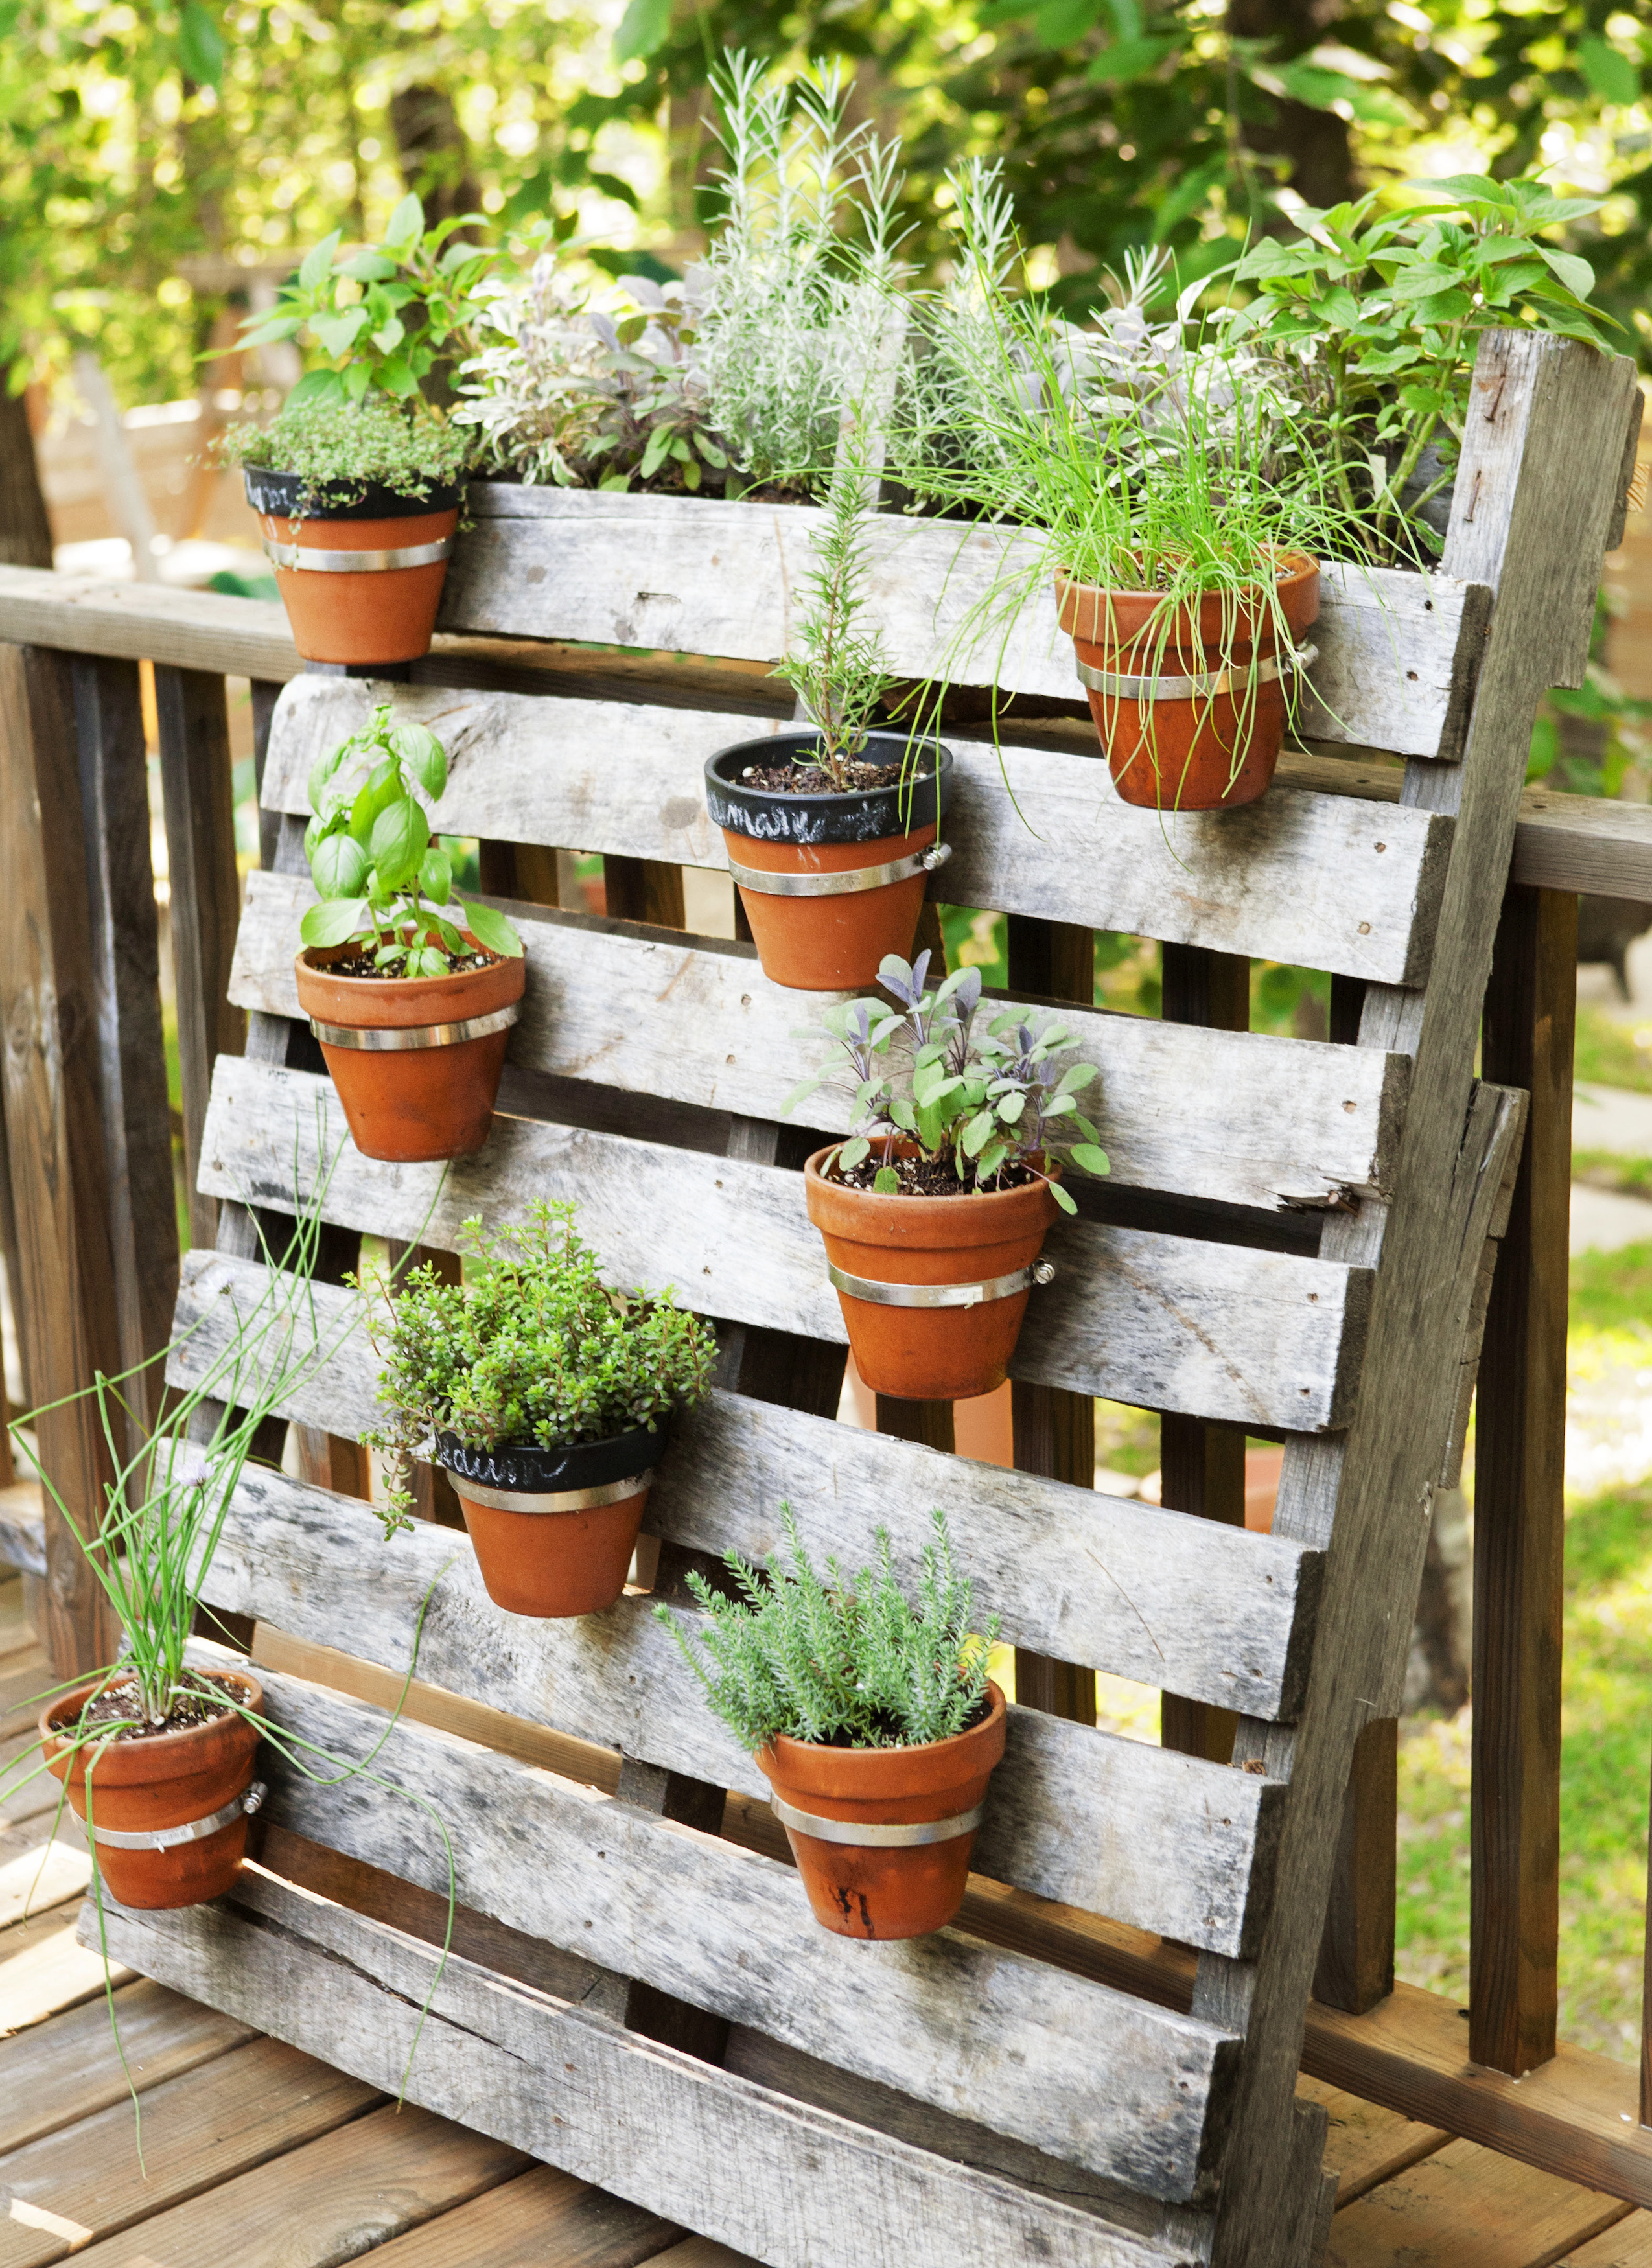 Unique and best gardening ideas